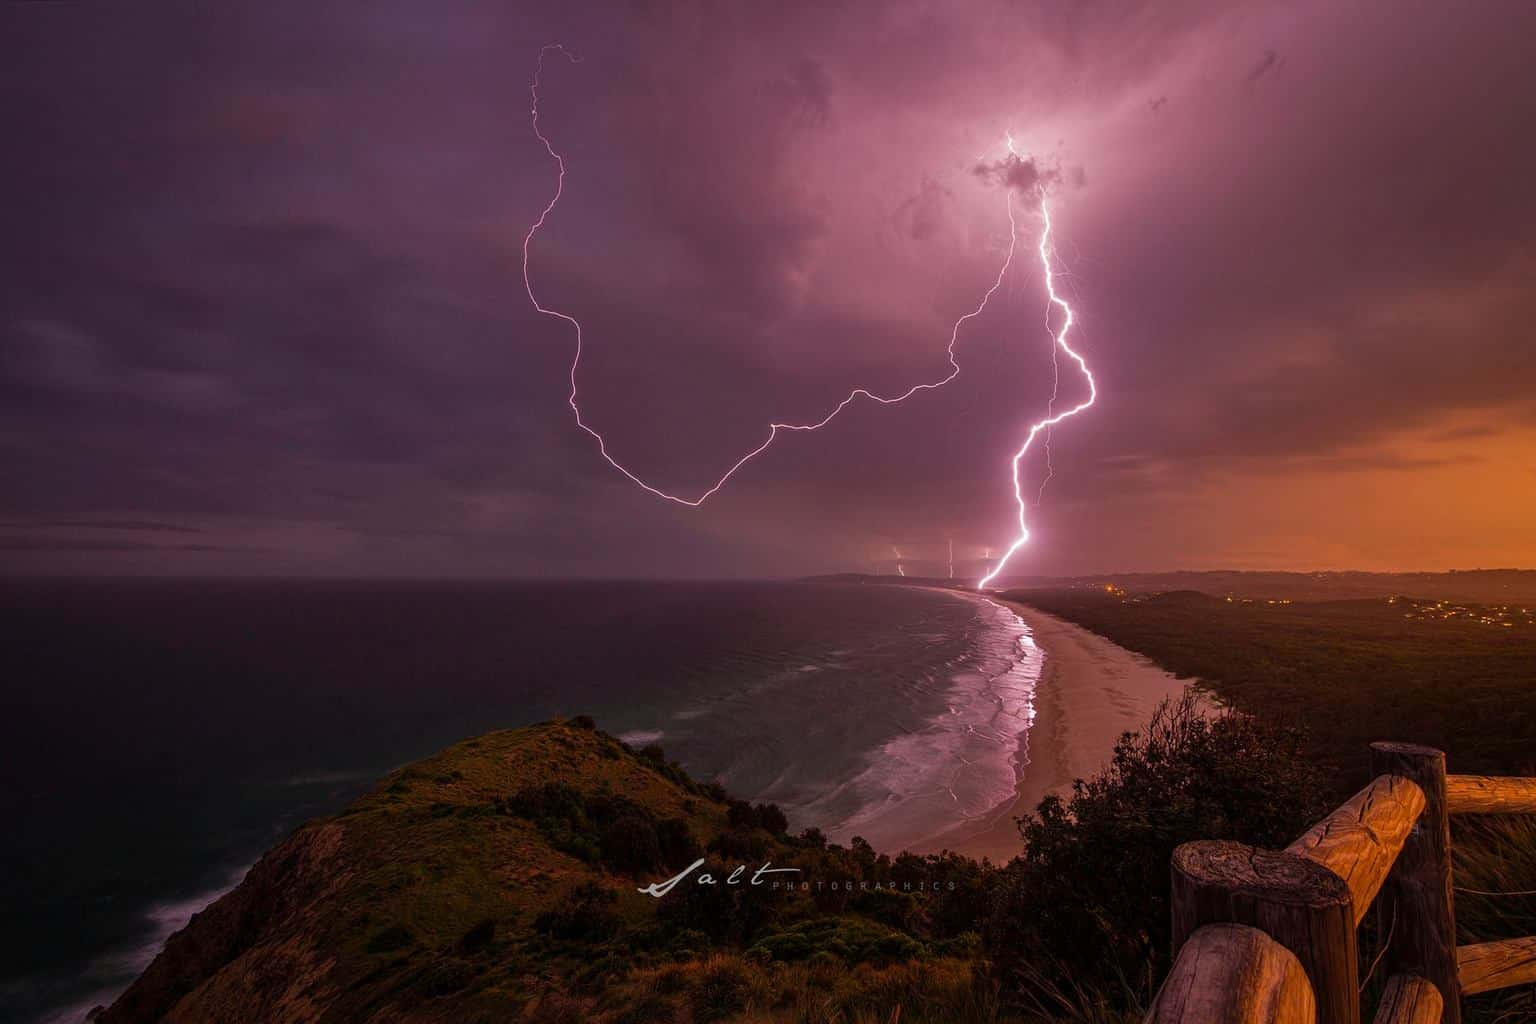 Byron Bay, QLD Australia. awesome chase Lucky we stayed for sunset otherwise I wouldn't have this bolt to show. So stoked....